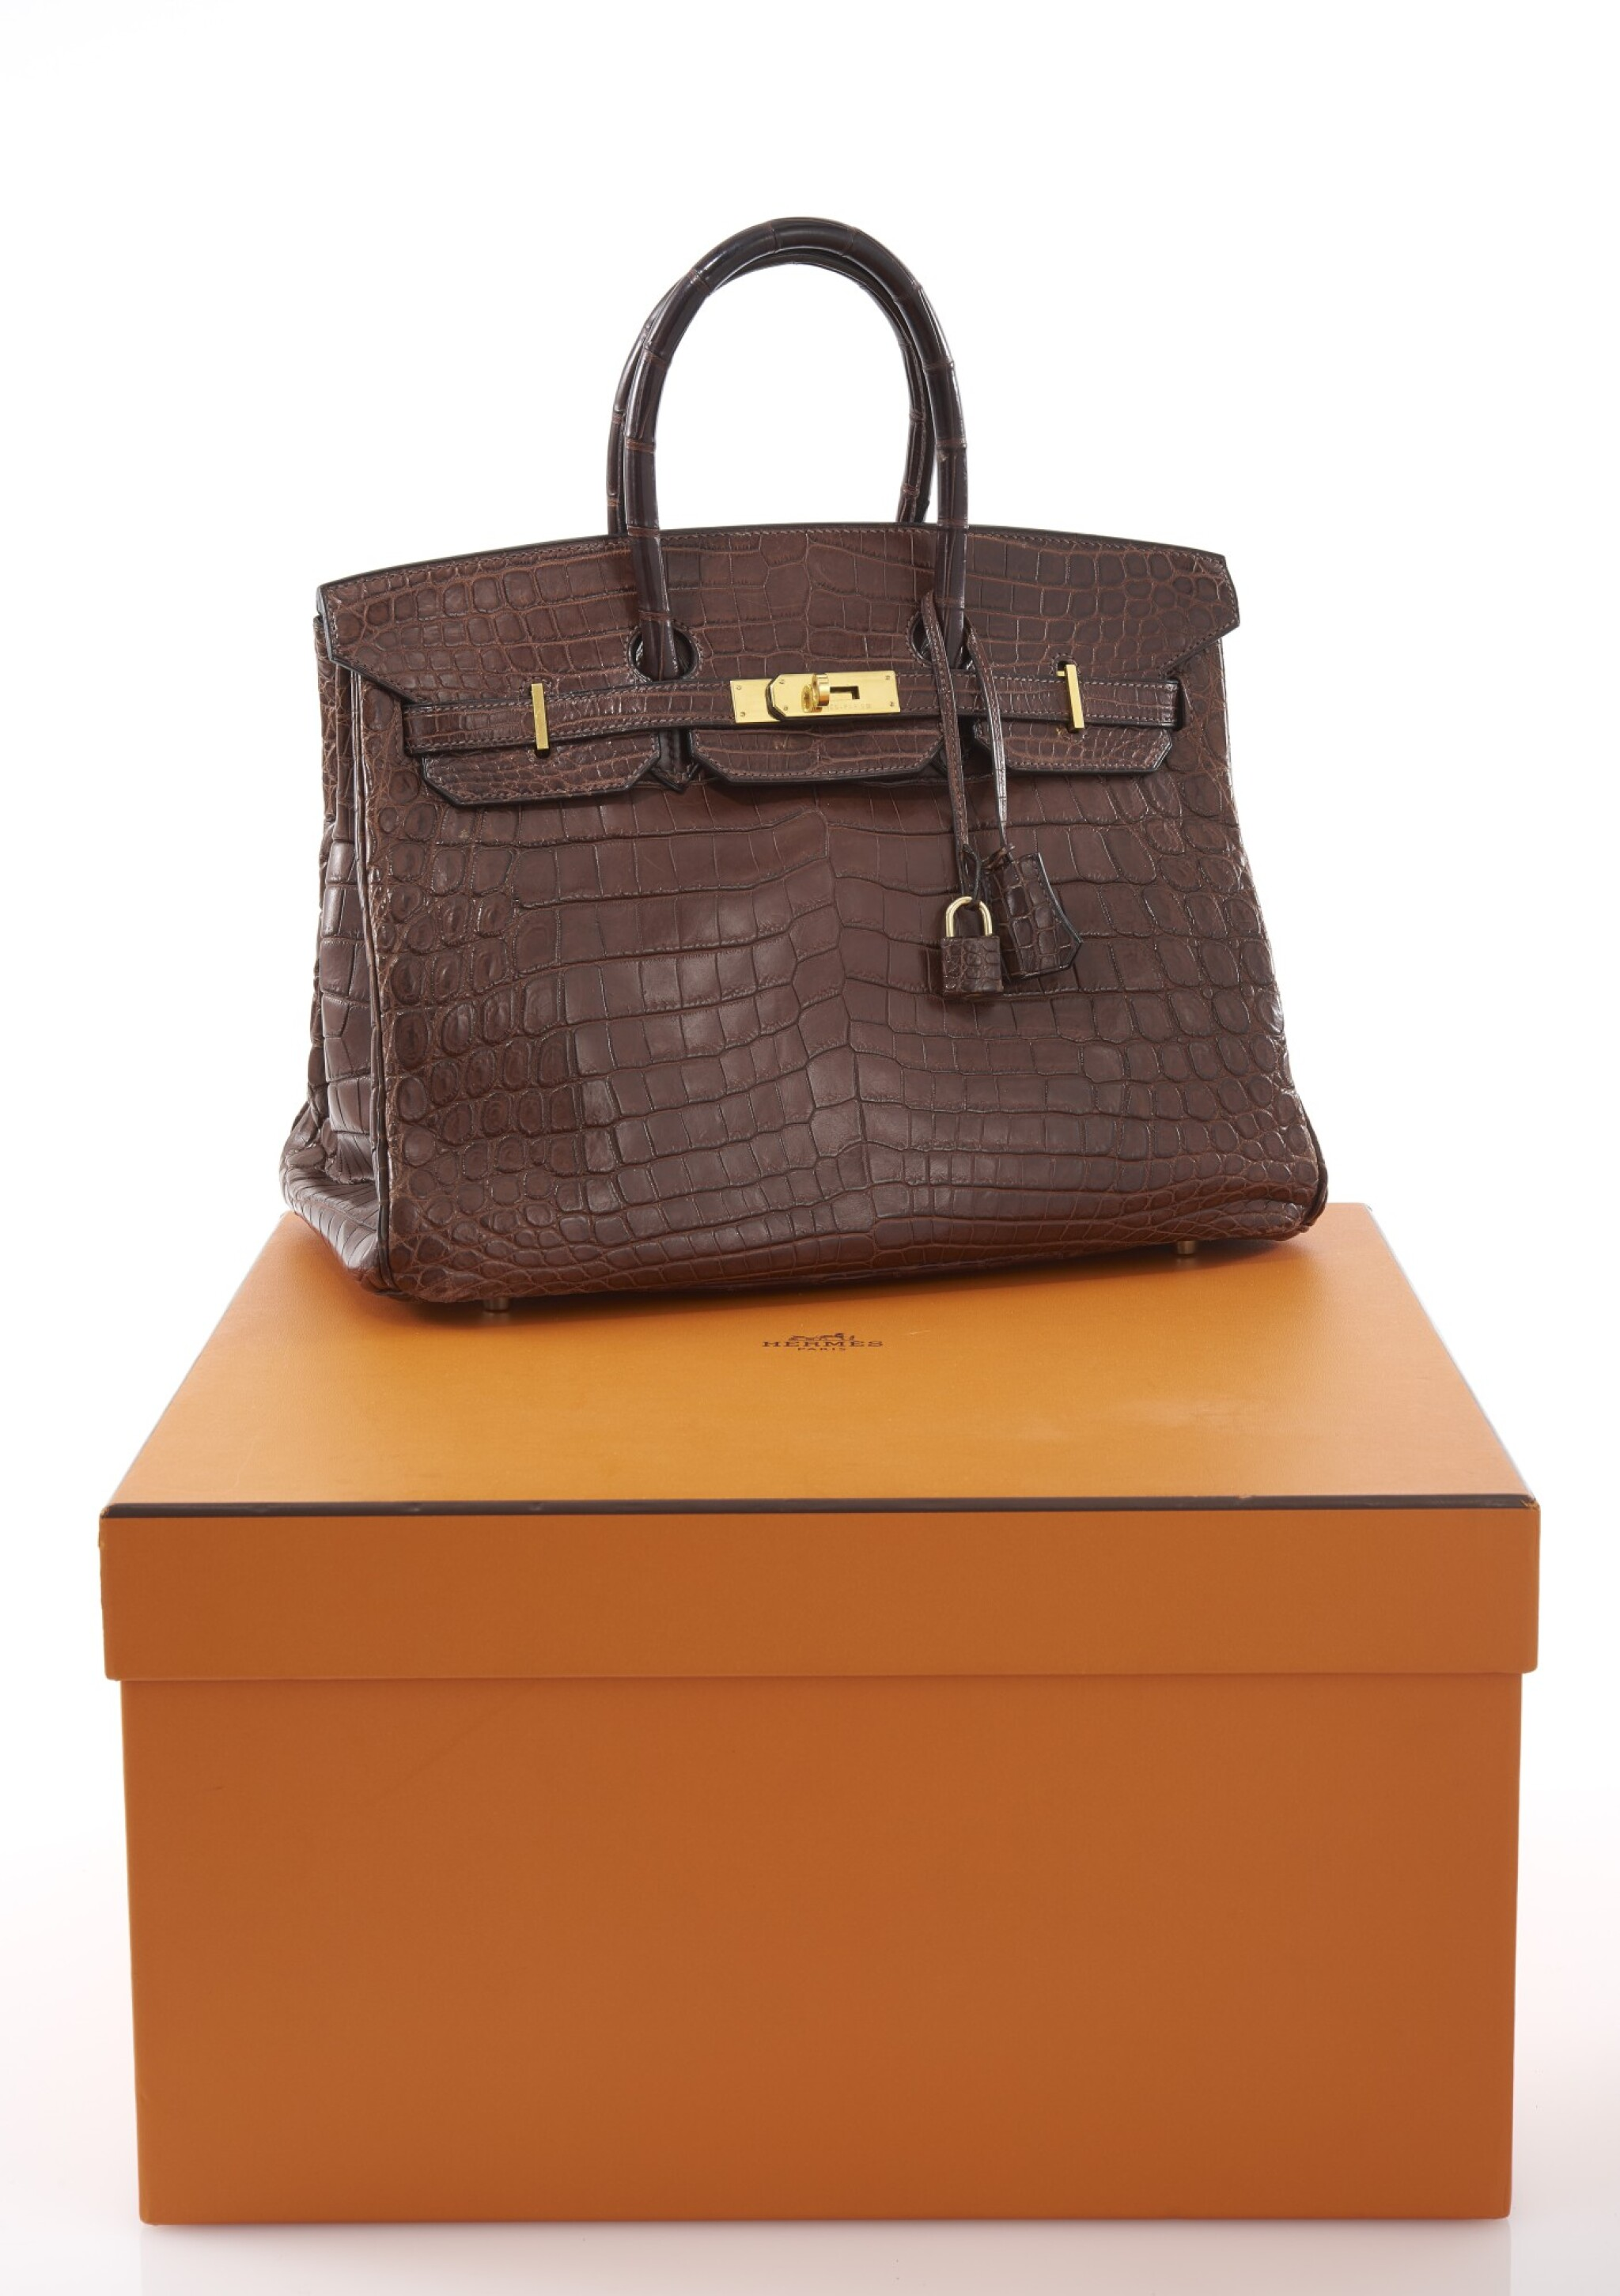 View 1 of Lot 20. Matte havanne niloticus crocodile, canvas and gold plated hardware handbag, Birkin 35, Hermès, 2002.